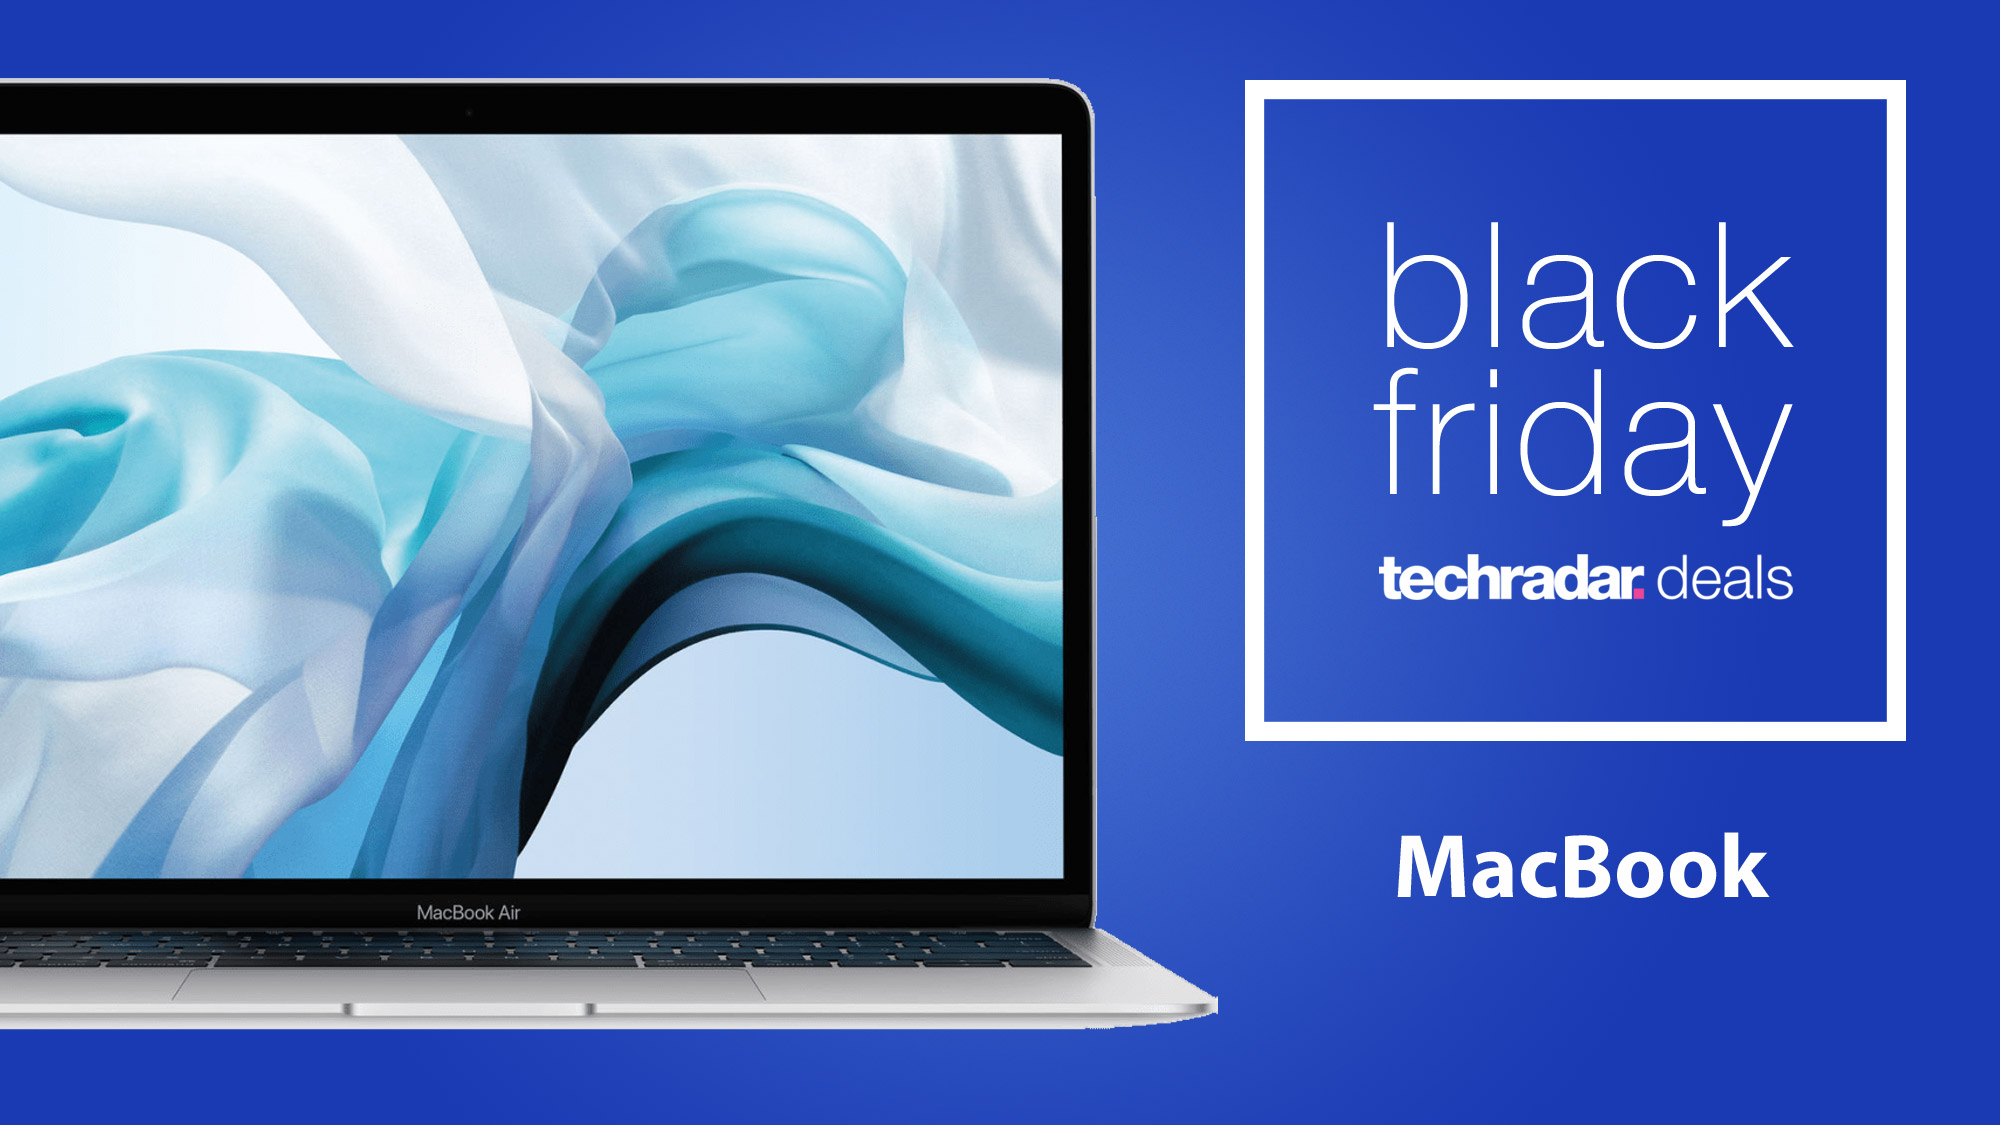 Macbook Deals On Black Friday These Are The Best Savings On Apple Laptops Techradar